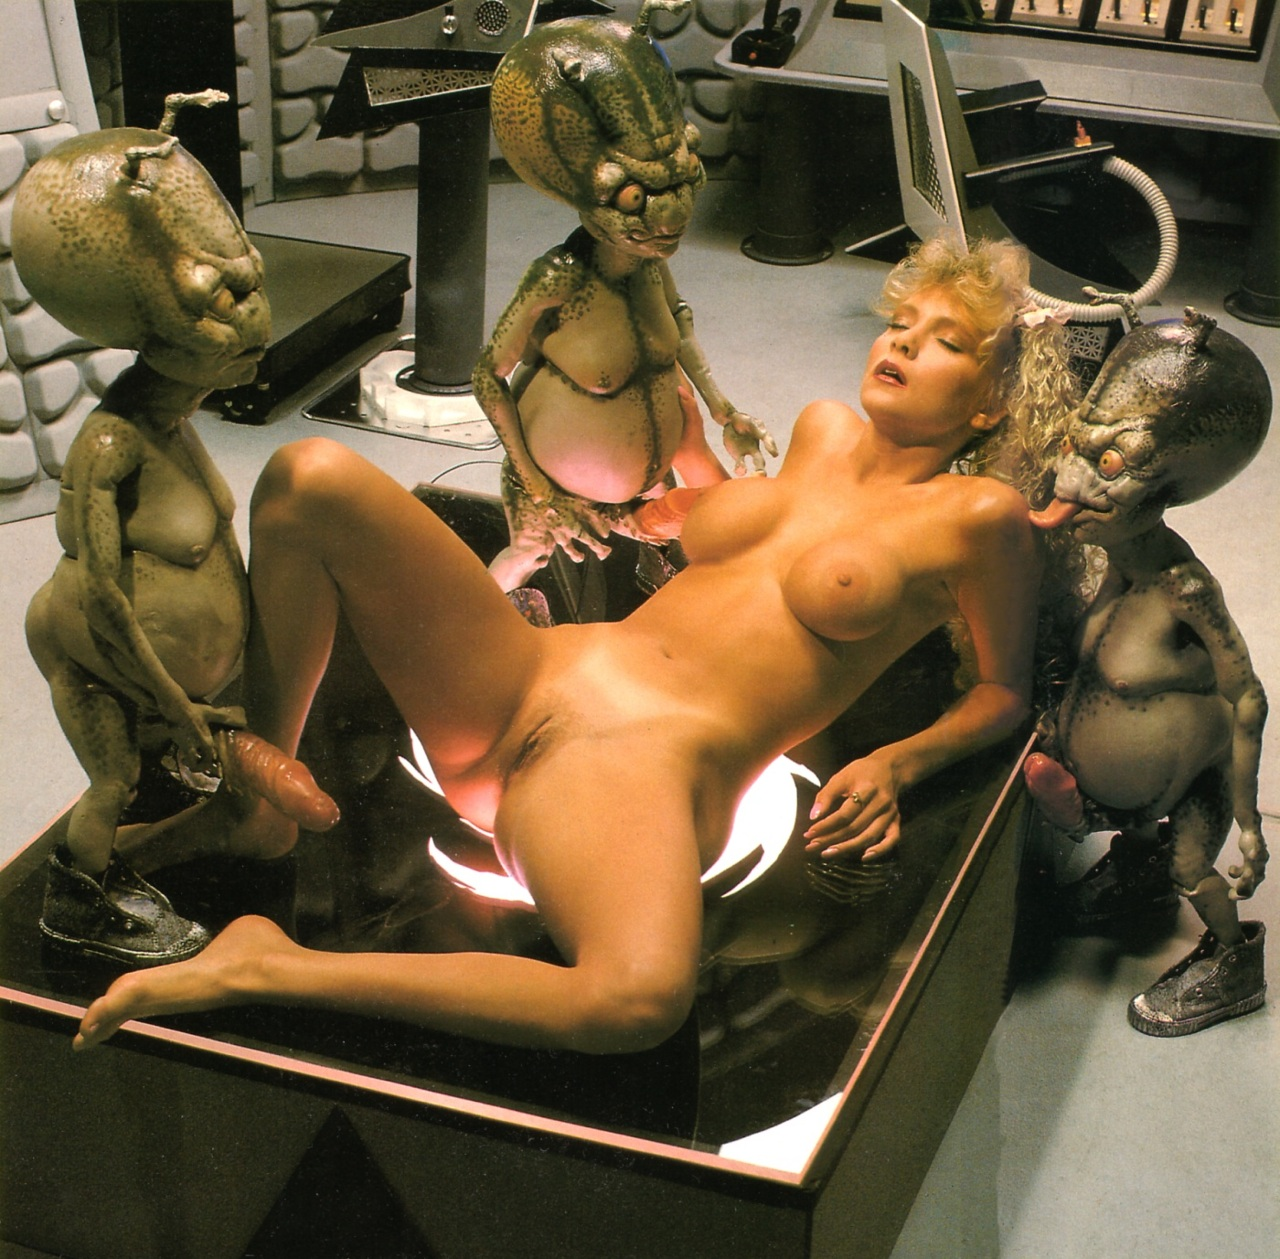 Hardcore nude alien women videos nsfw film